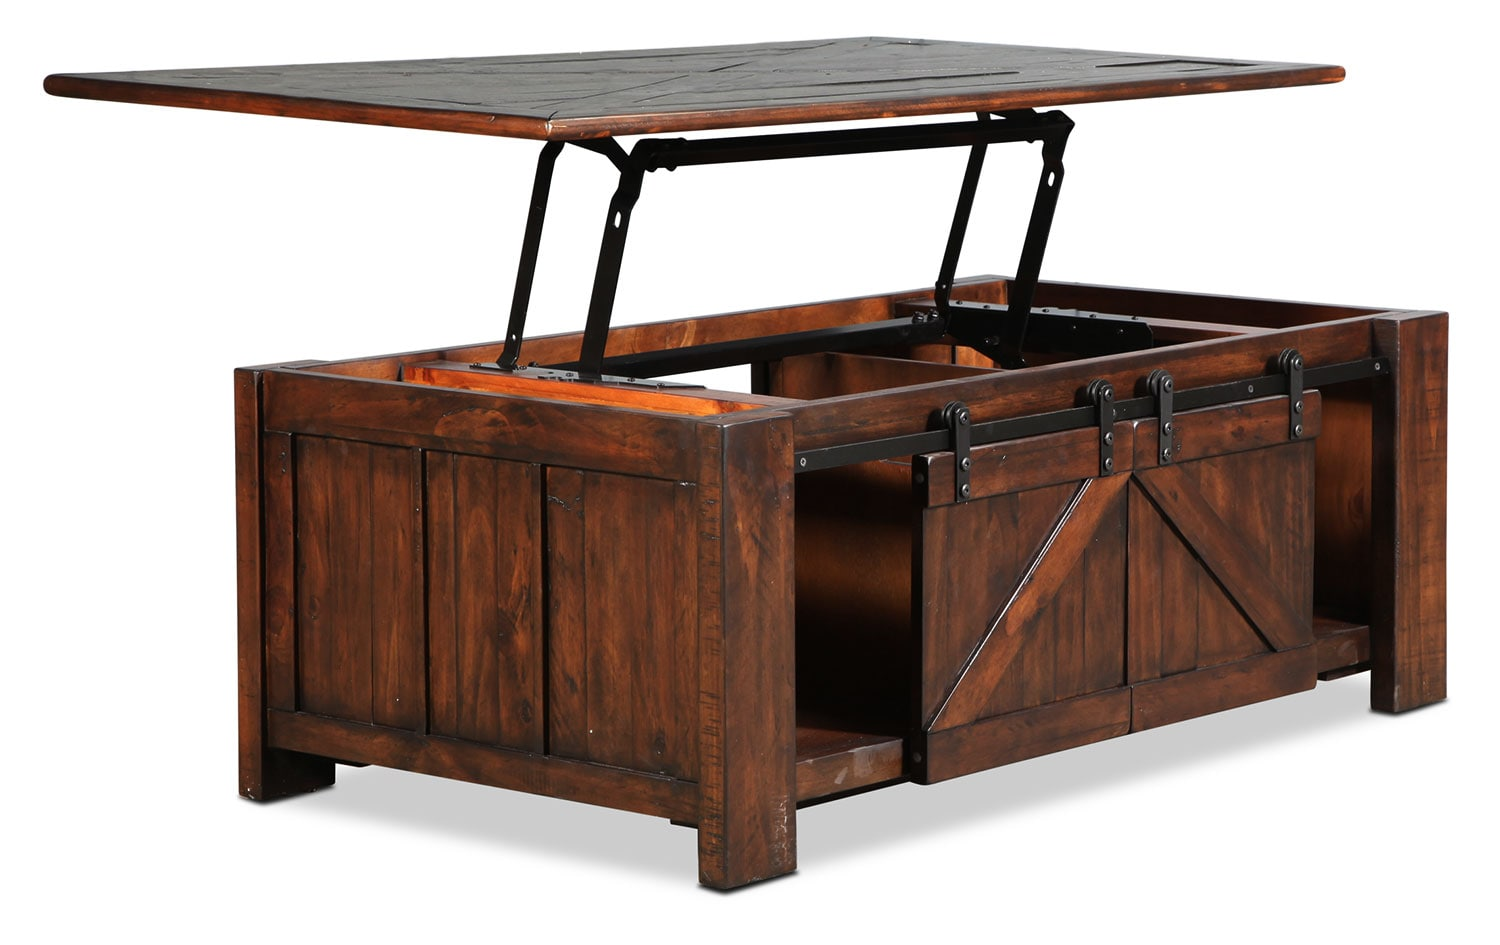 Fraser lift top coffee table rustic pine levin furniture Lifting top coffee table